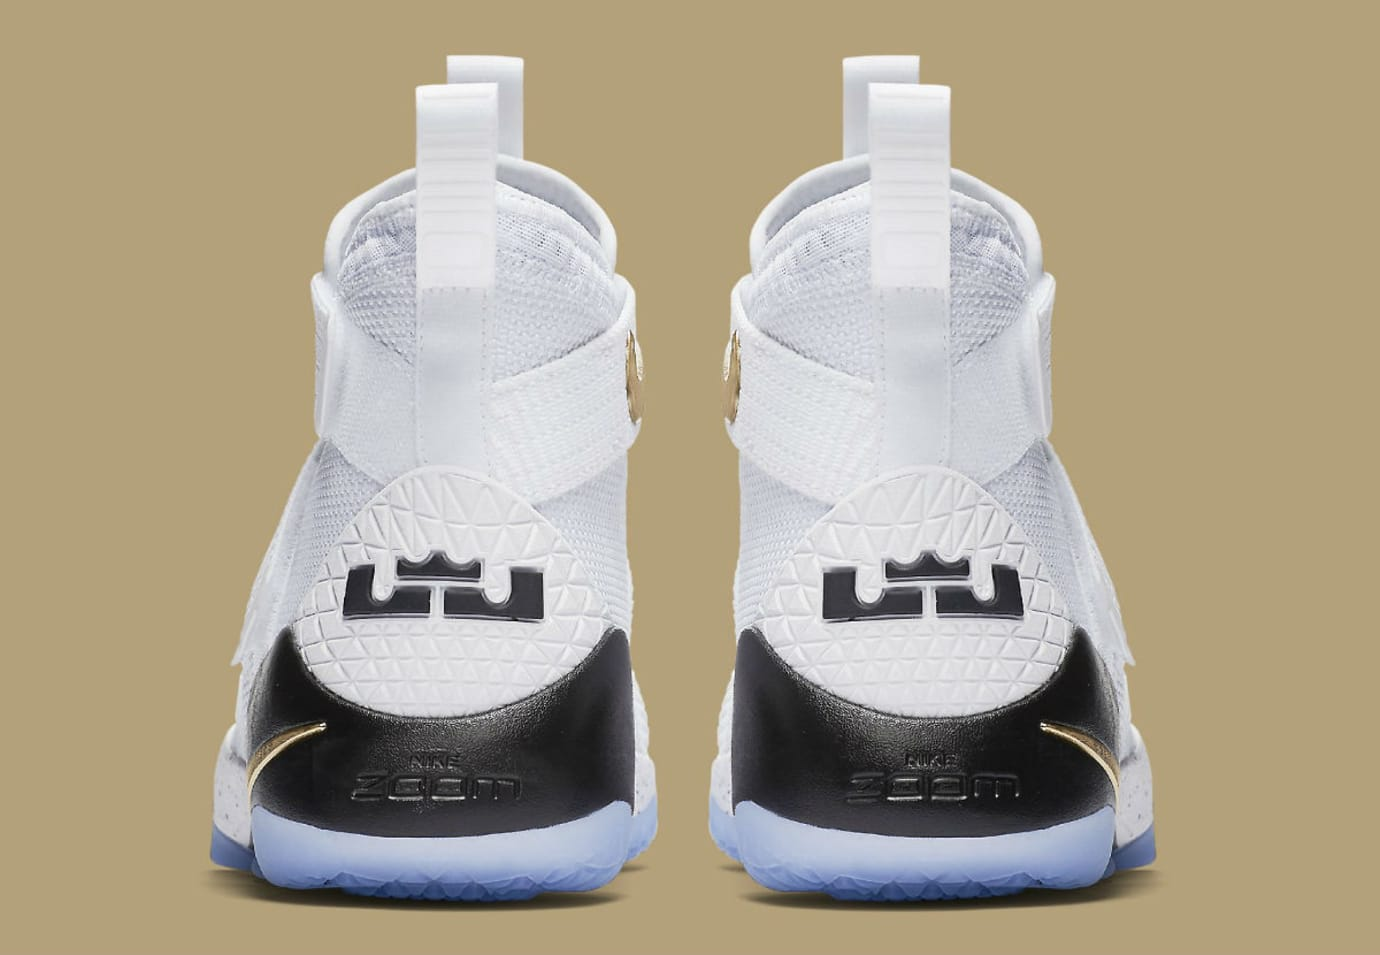 Nike LeBron Soldier 11 White Gold Black Release Date Heel 897644-101